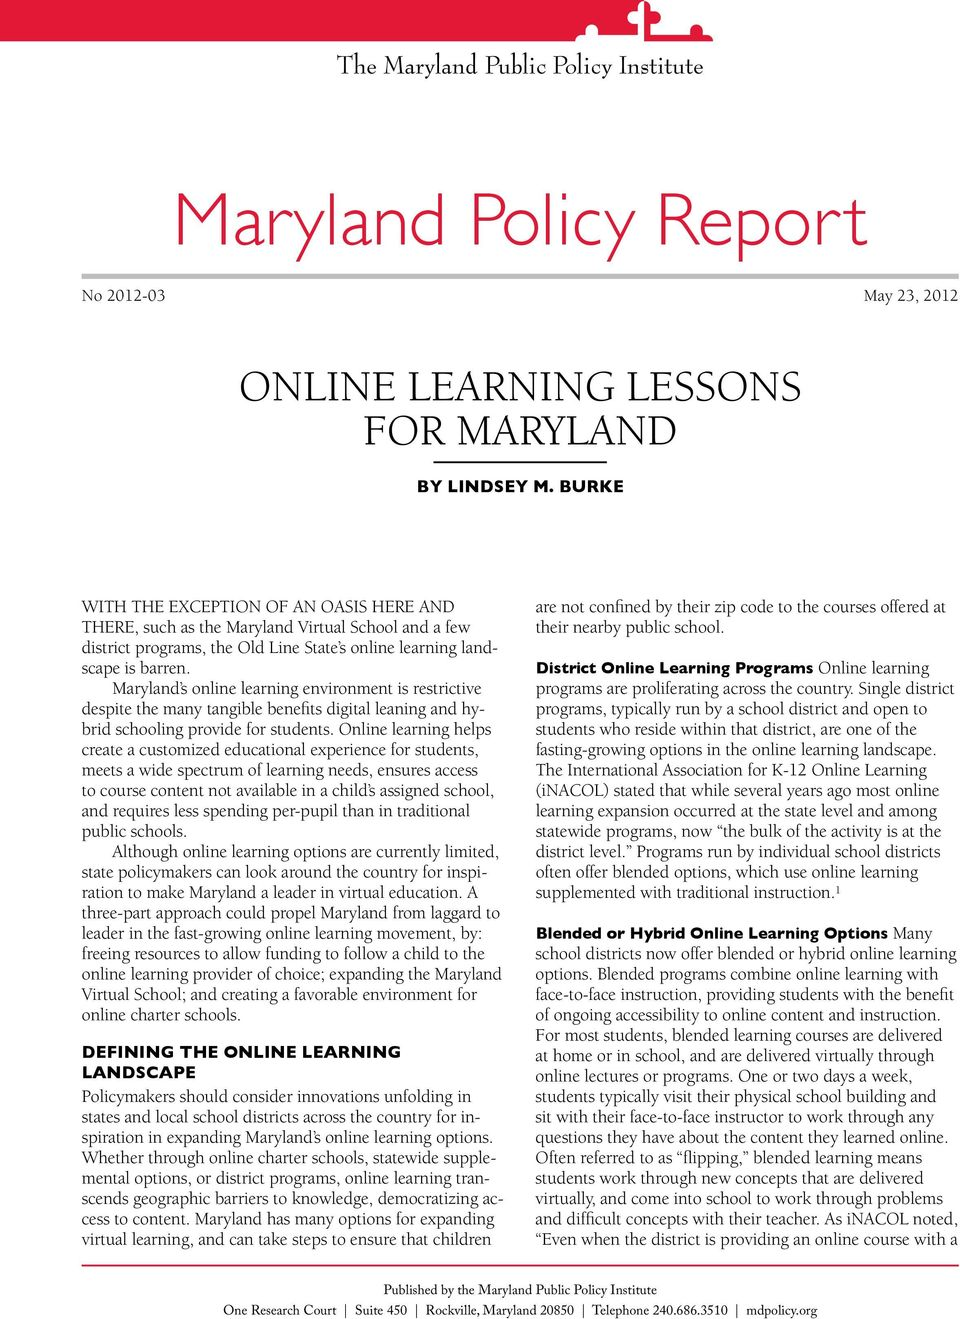 Maryland s online learning environment is restrictive despite the many tangible benefits digital leaning and hybrid schooling provide for Online learning helps create a customized educational